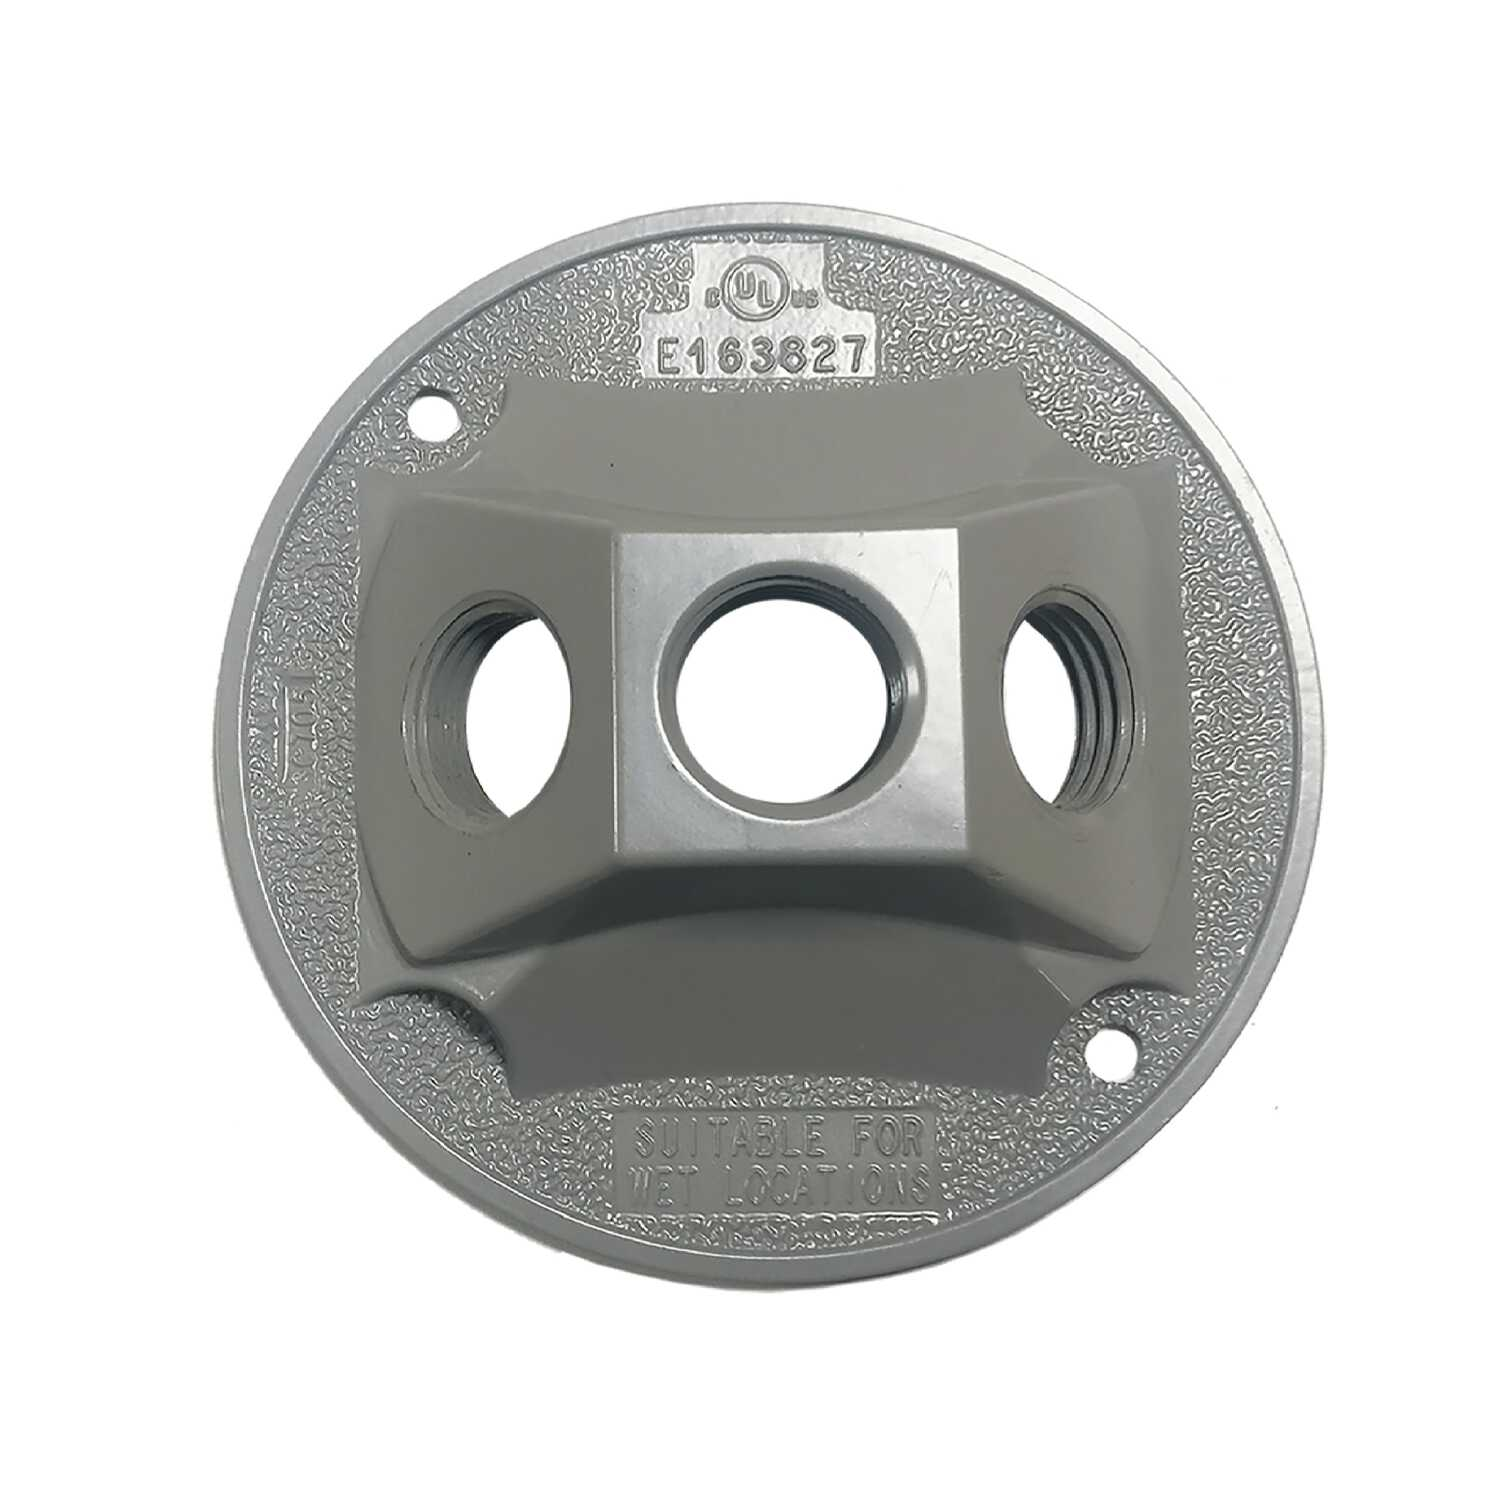 Sigma  Round  Die cast Aluminum  1 gang Electrical Cover  For Light Fixtures